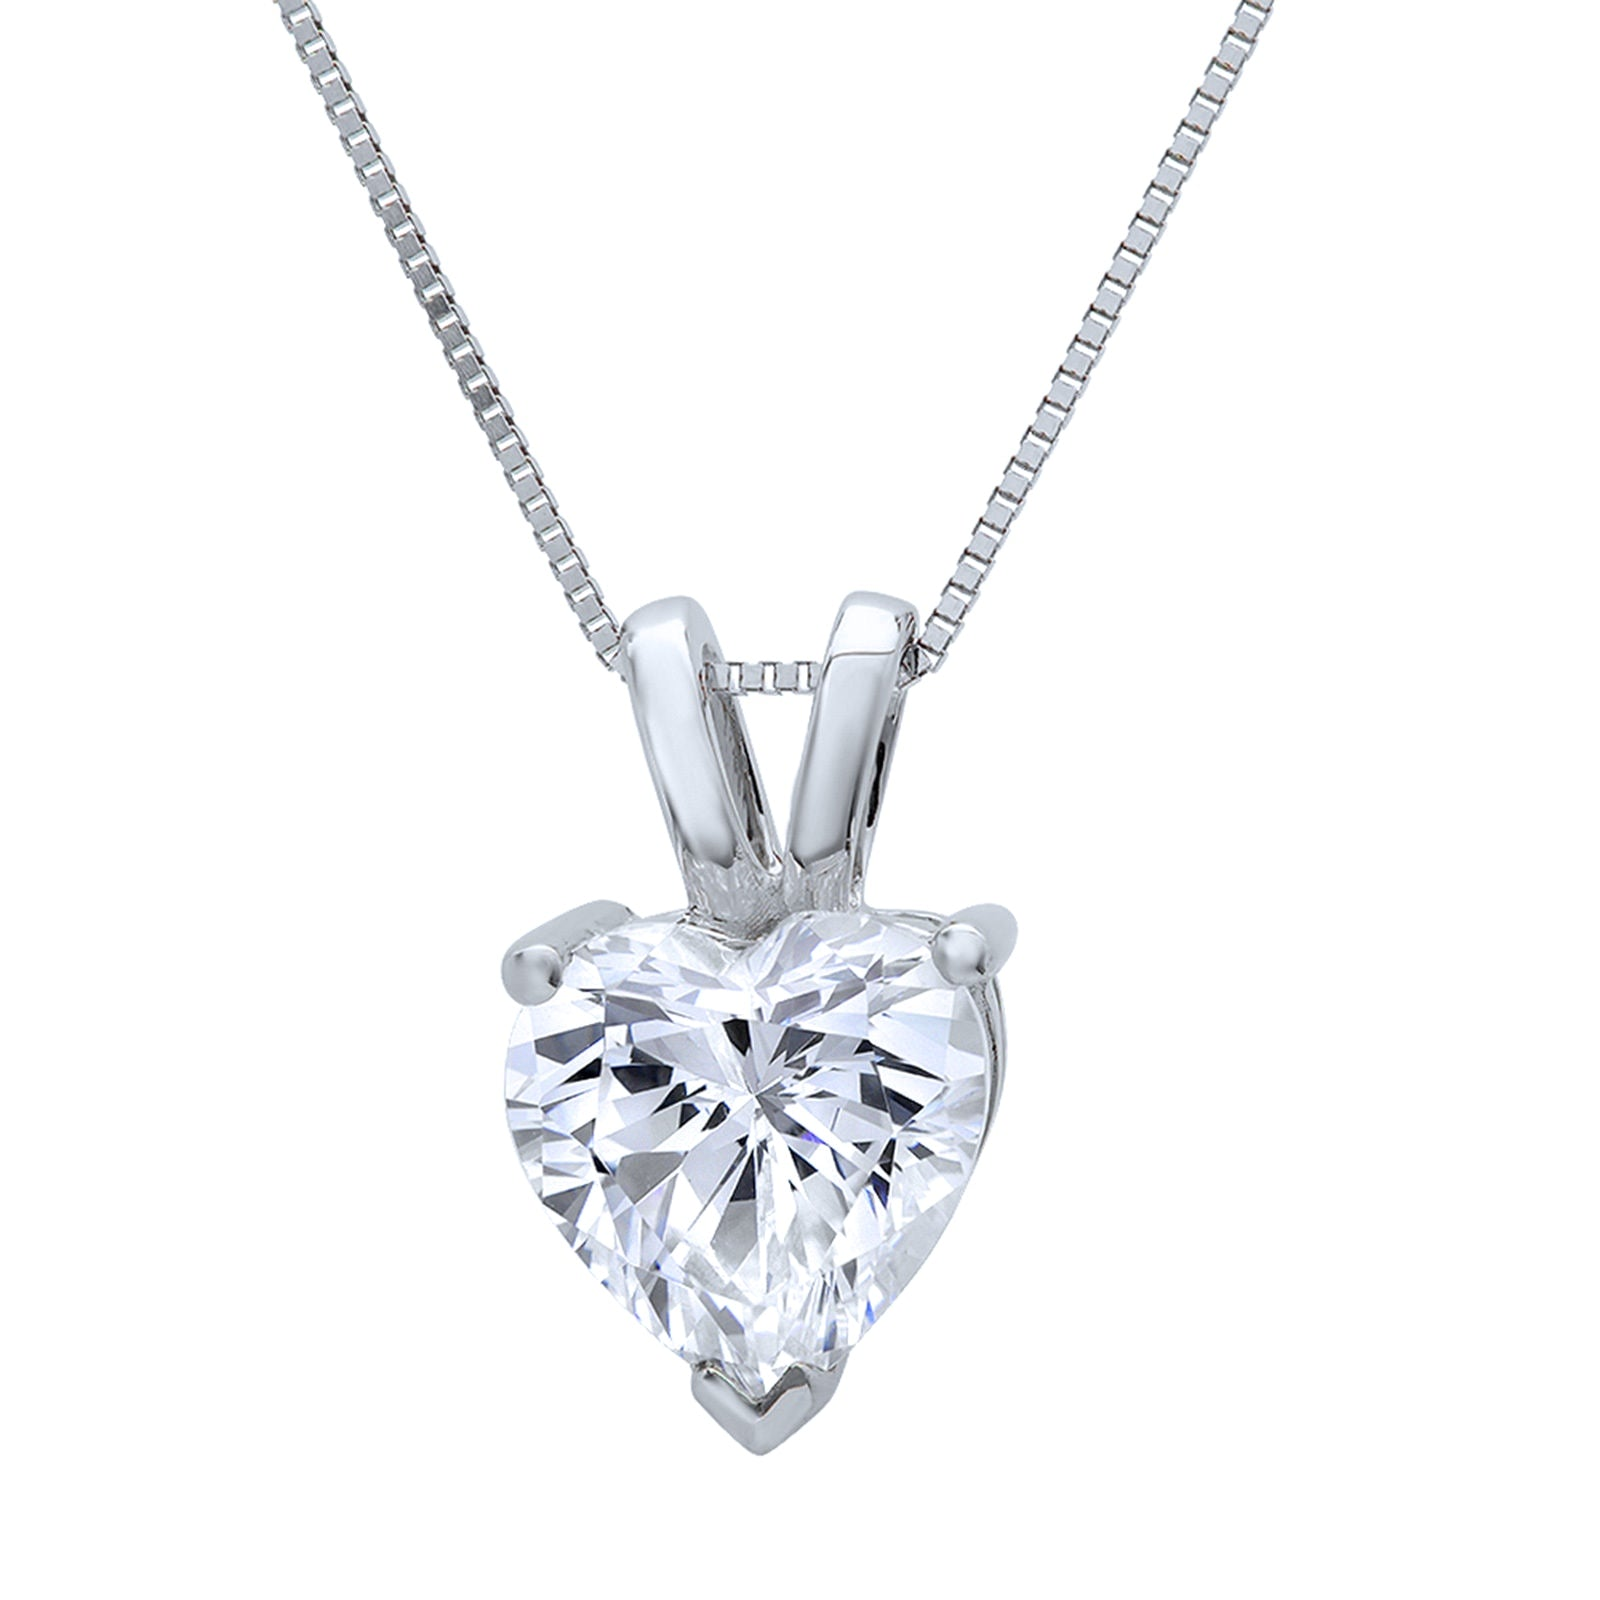 pendant silver brilliance sterling diamond ip cz simulated by believe infinity com necklace walmart